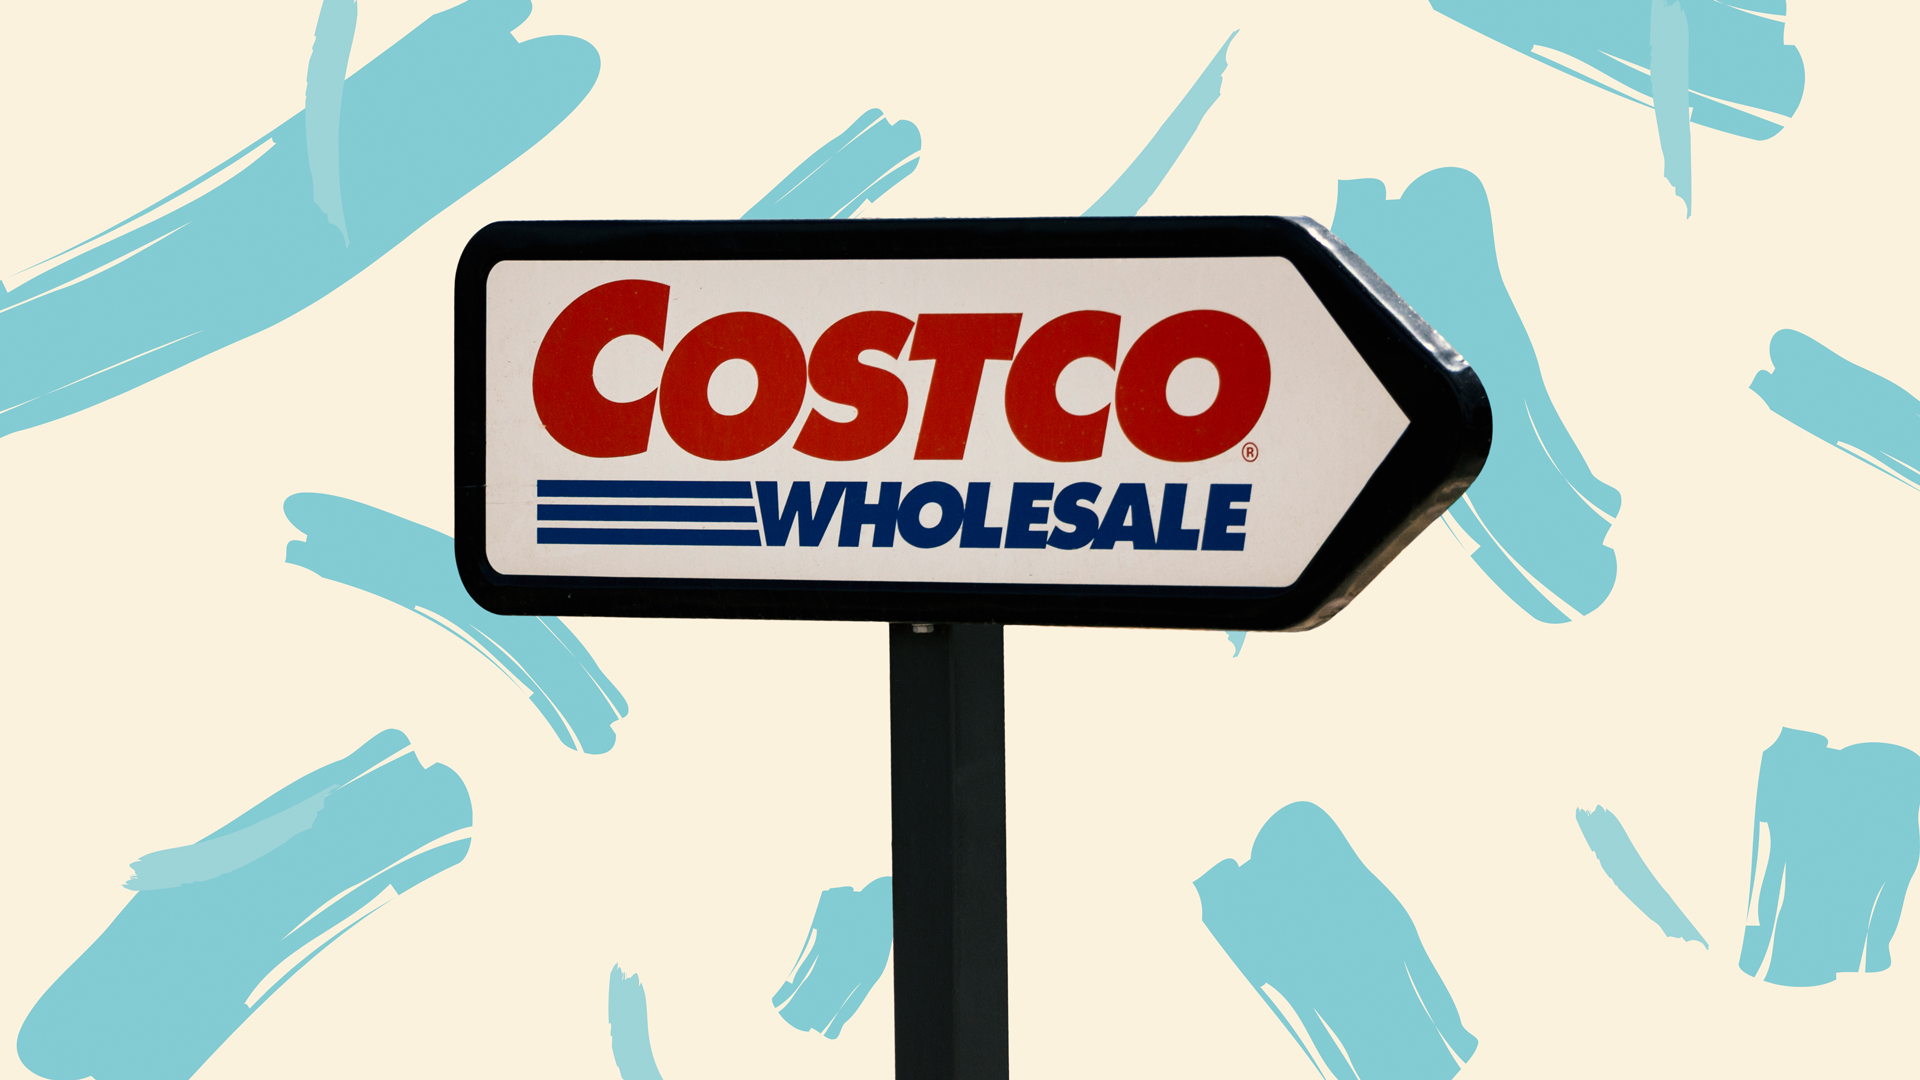 Costco Sells Surprisingly High-End Name Brands That You Need to Know About